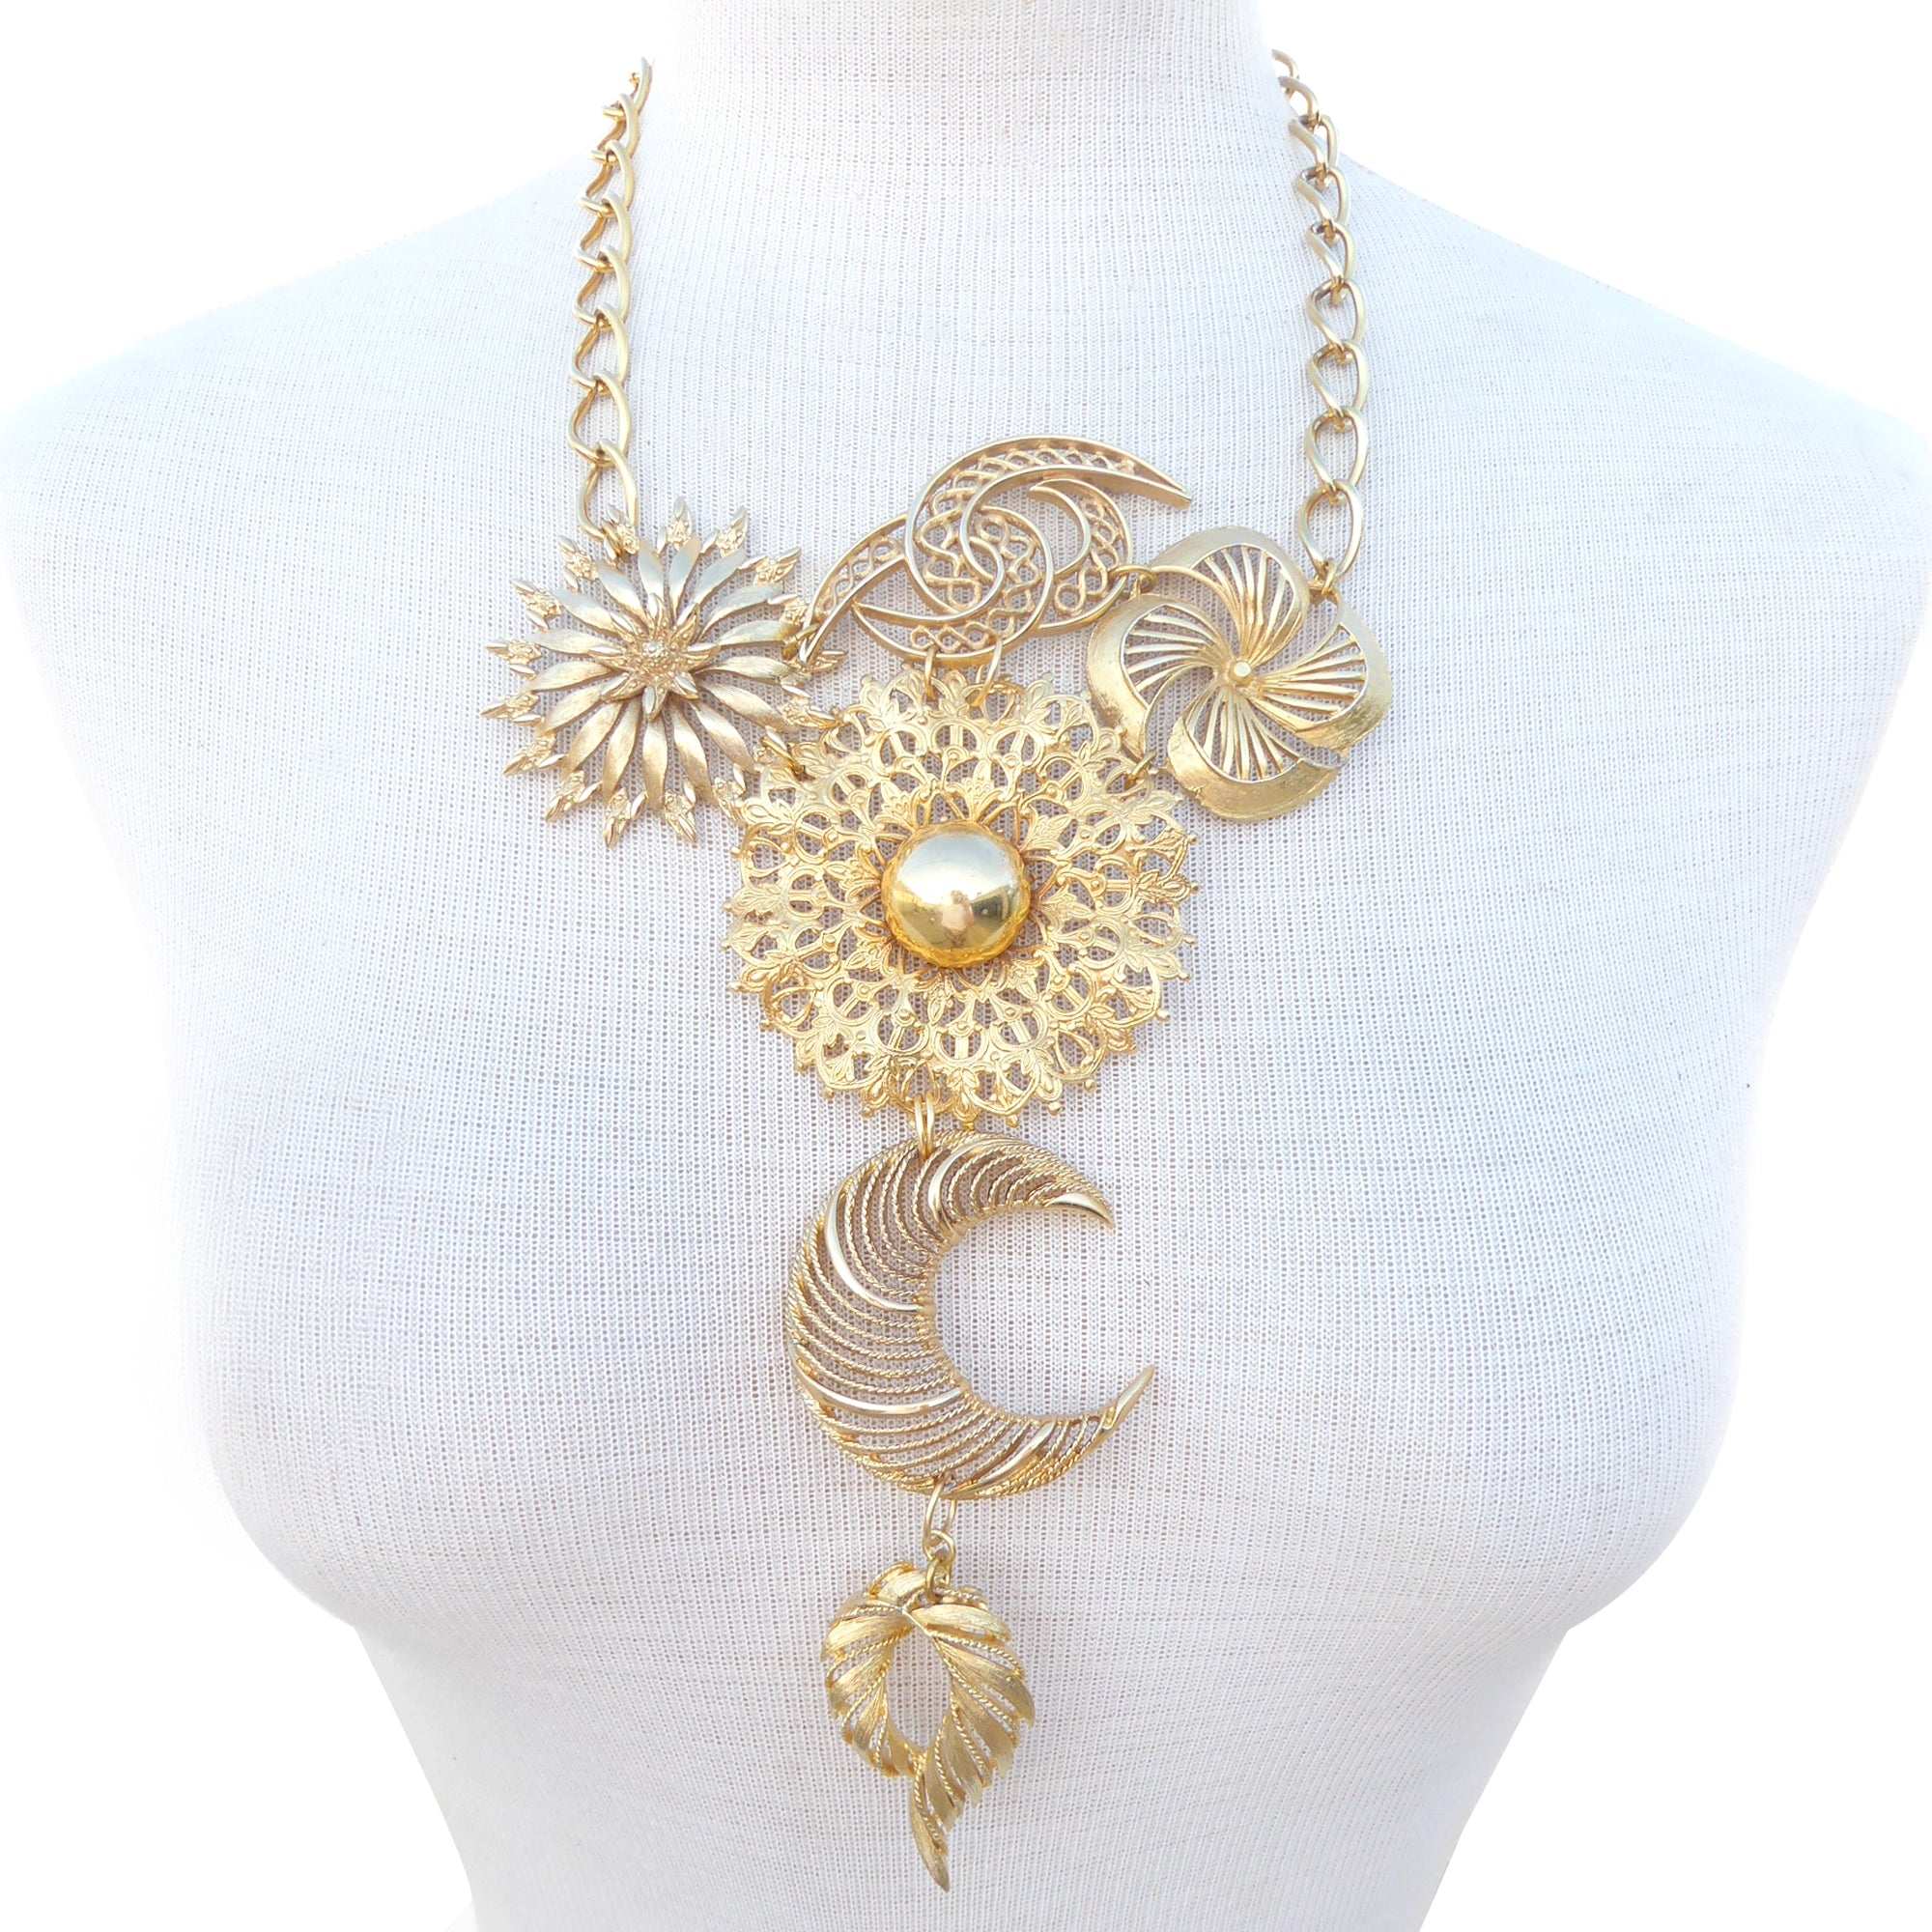 Pazia necklace